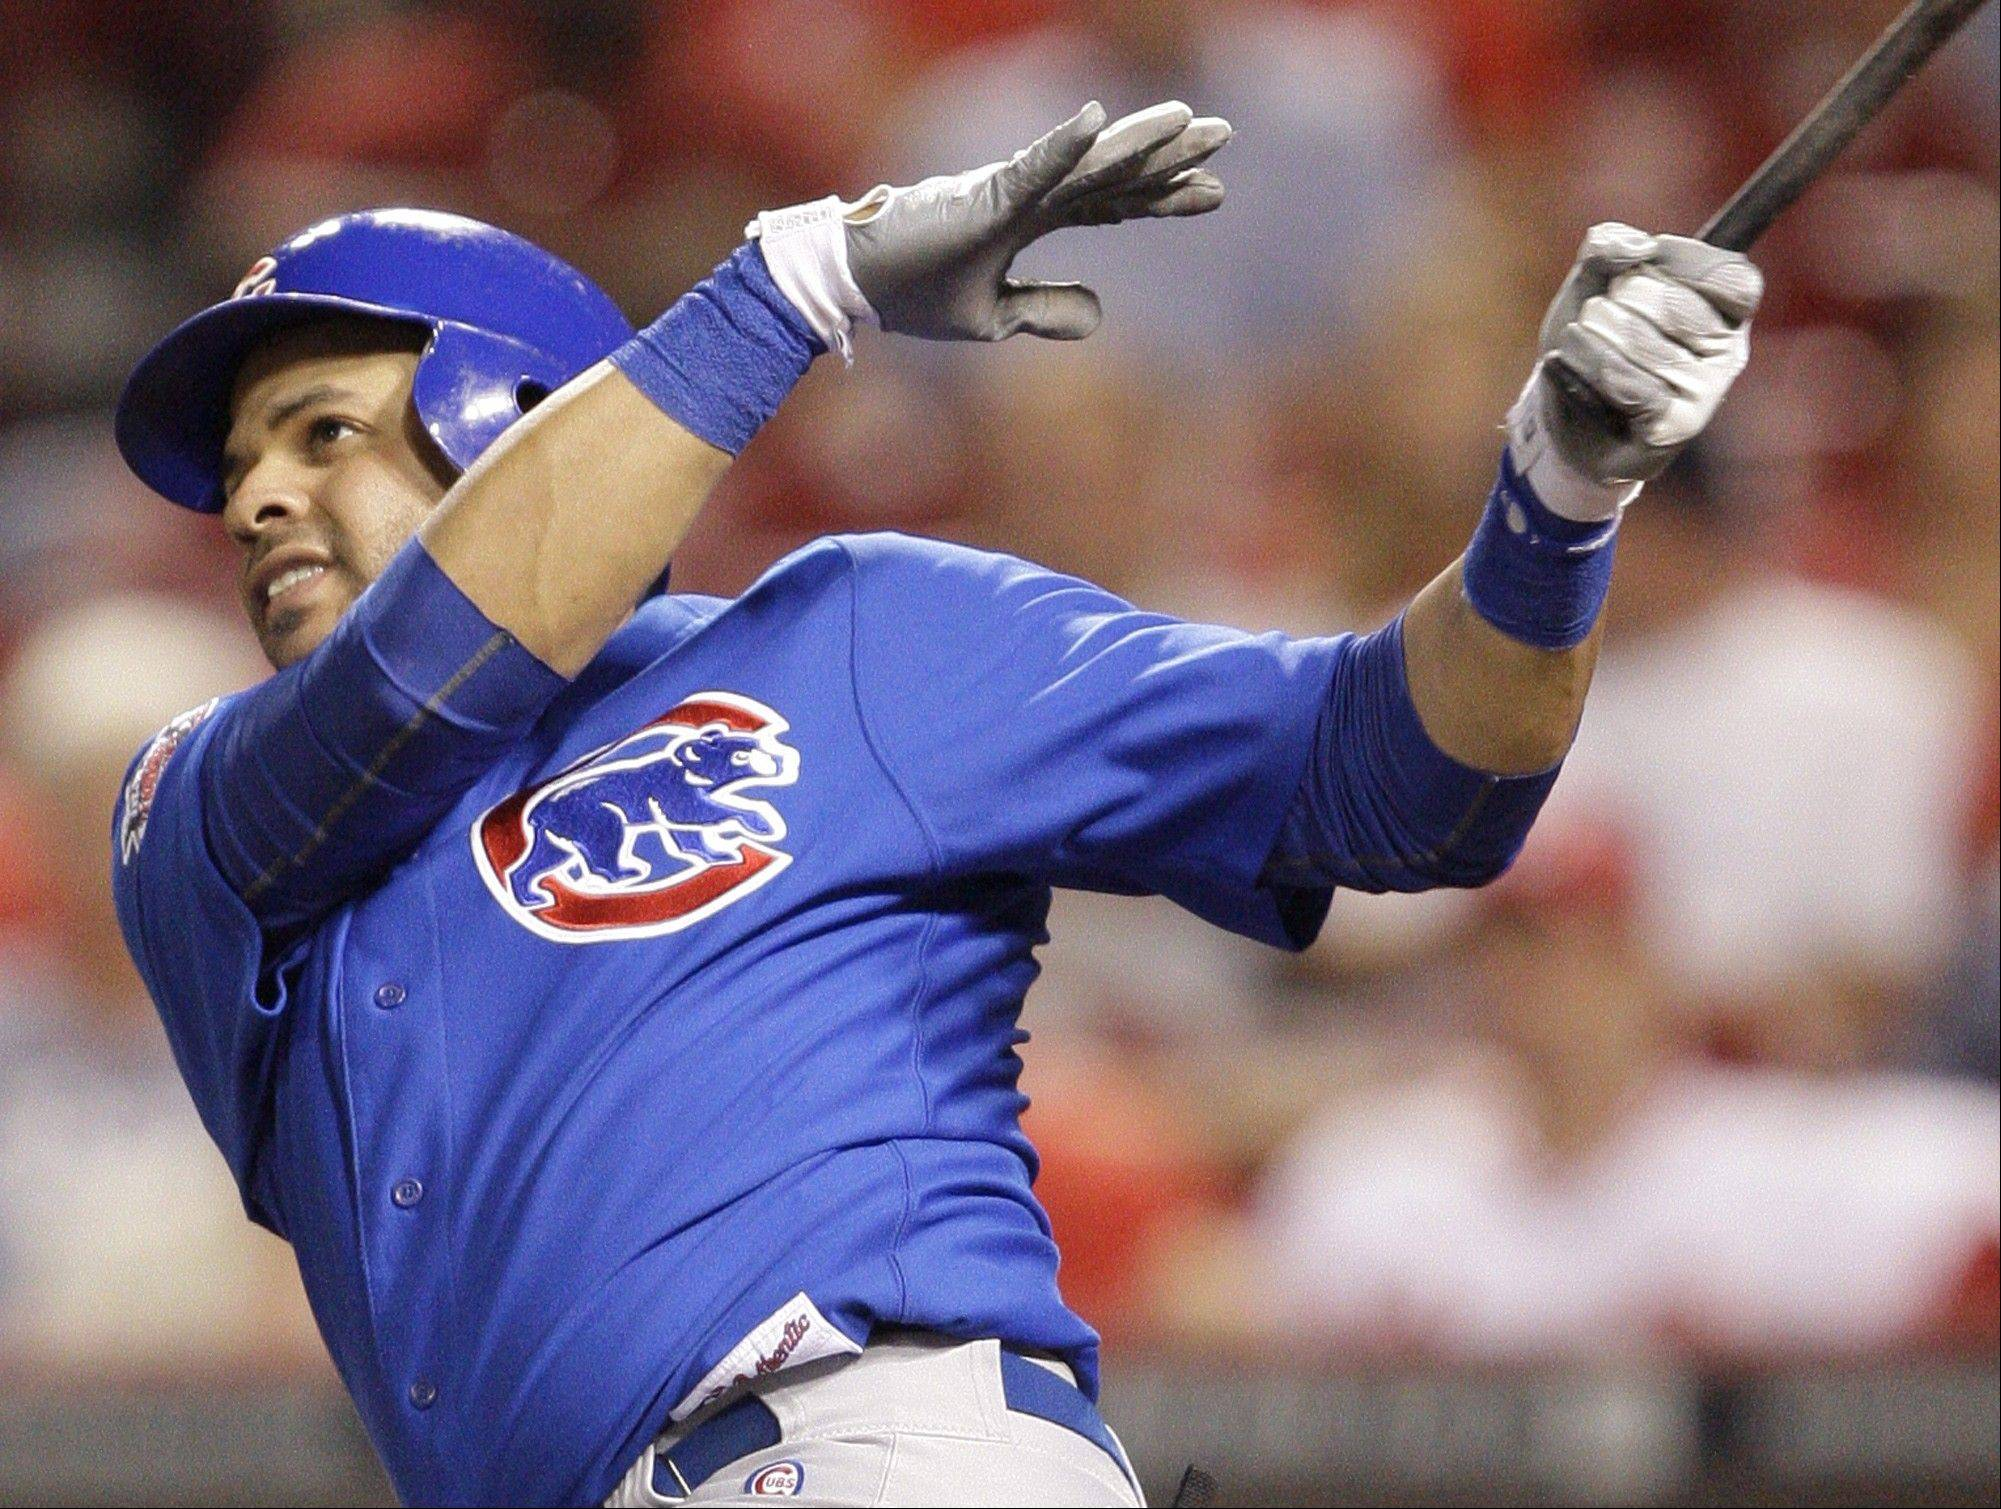 Your turn: Should Cubs bring back Aramis Ramirez?